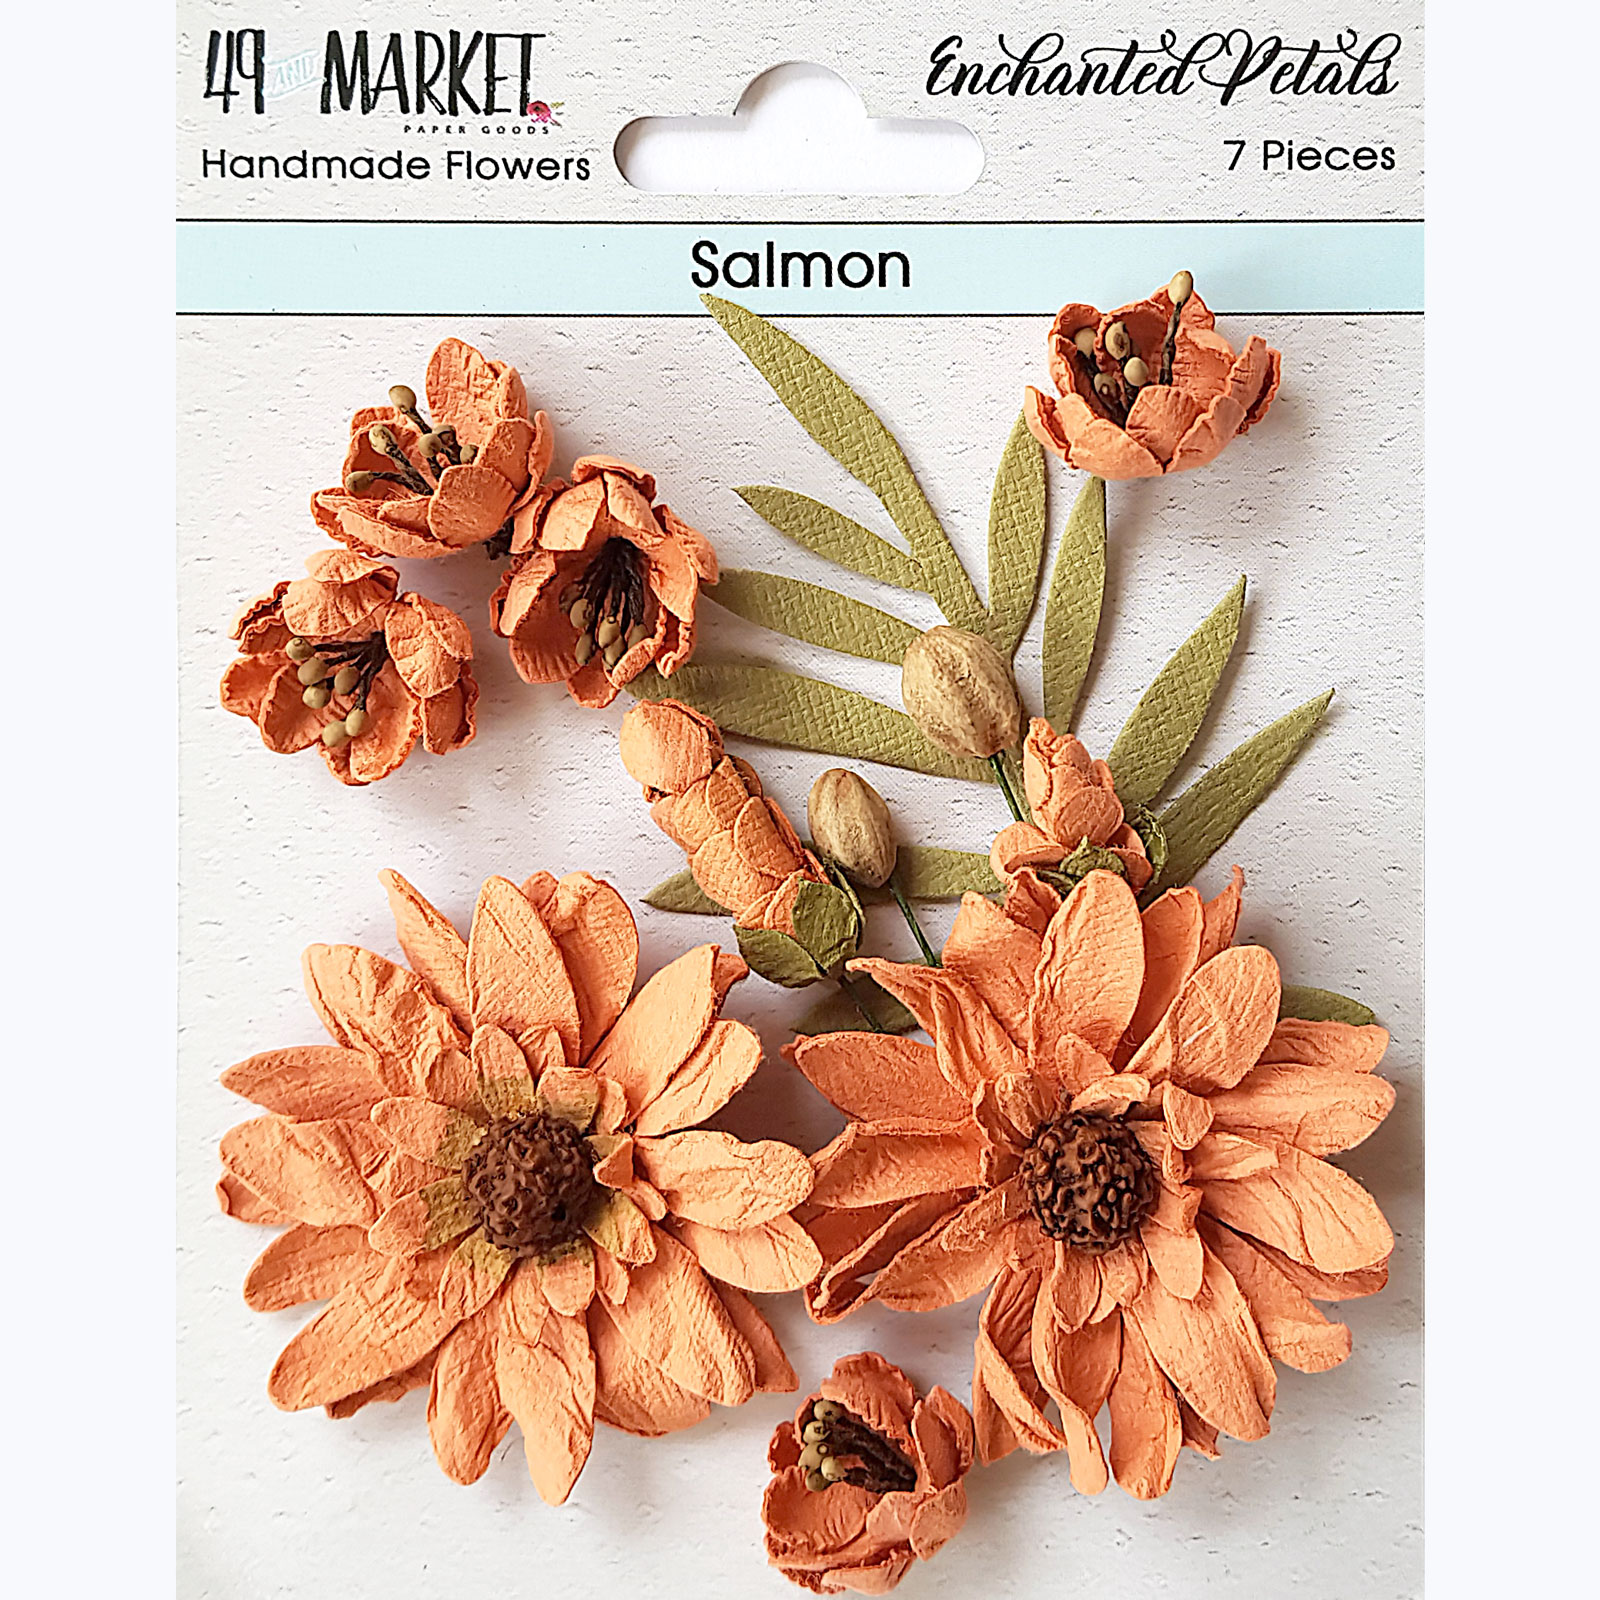 Enchanted Petals - Salmon